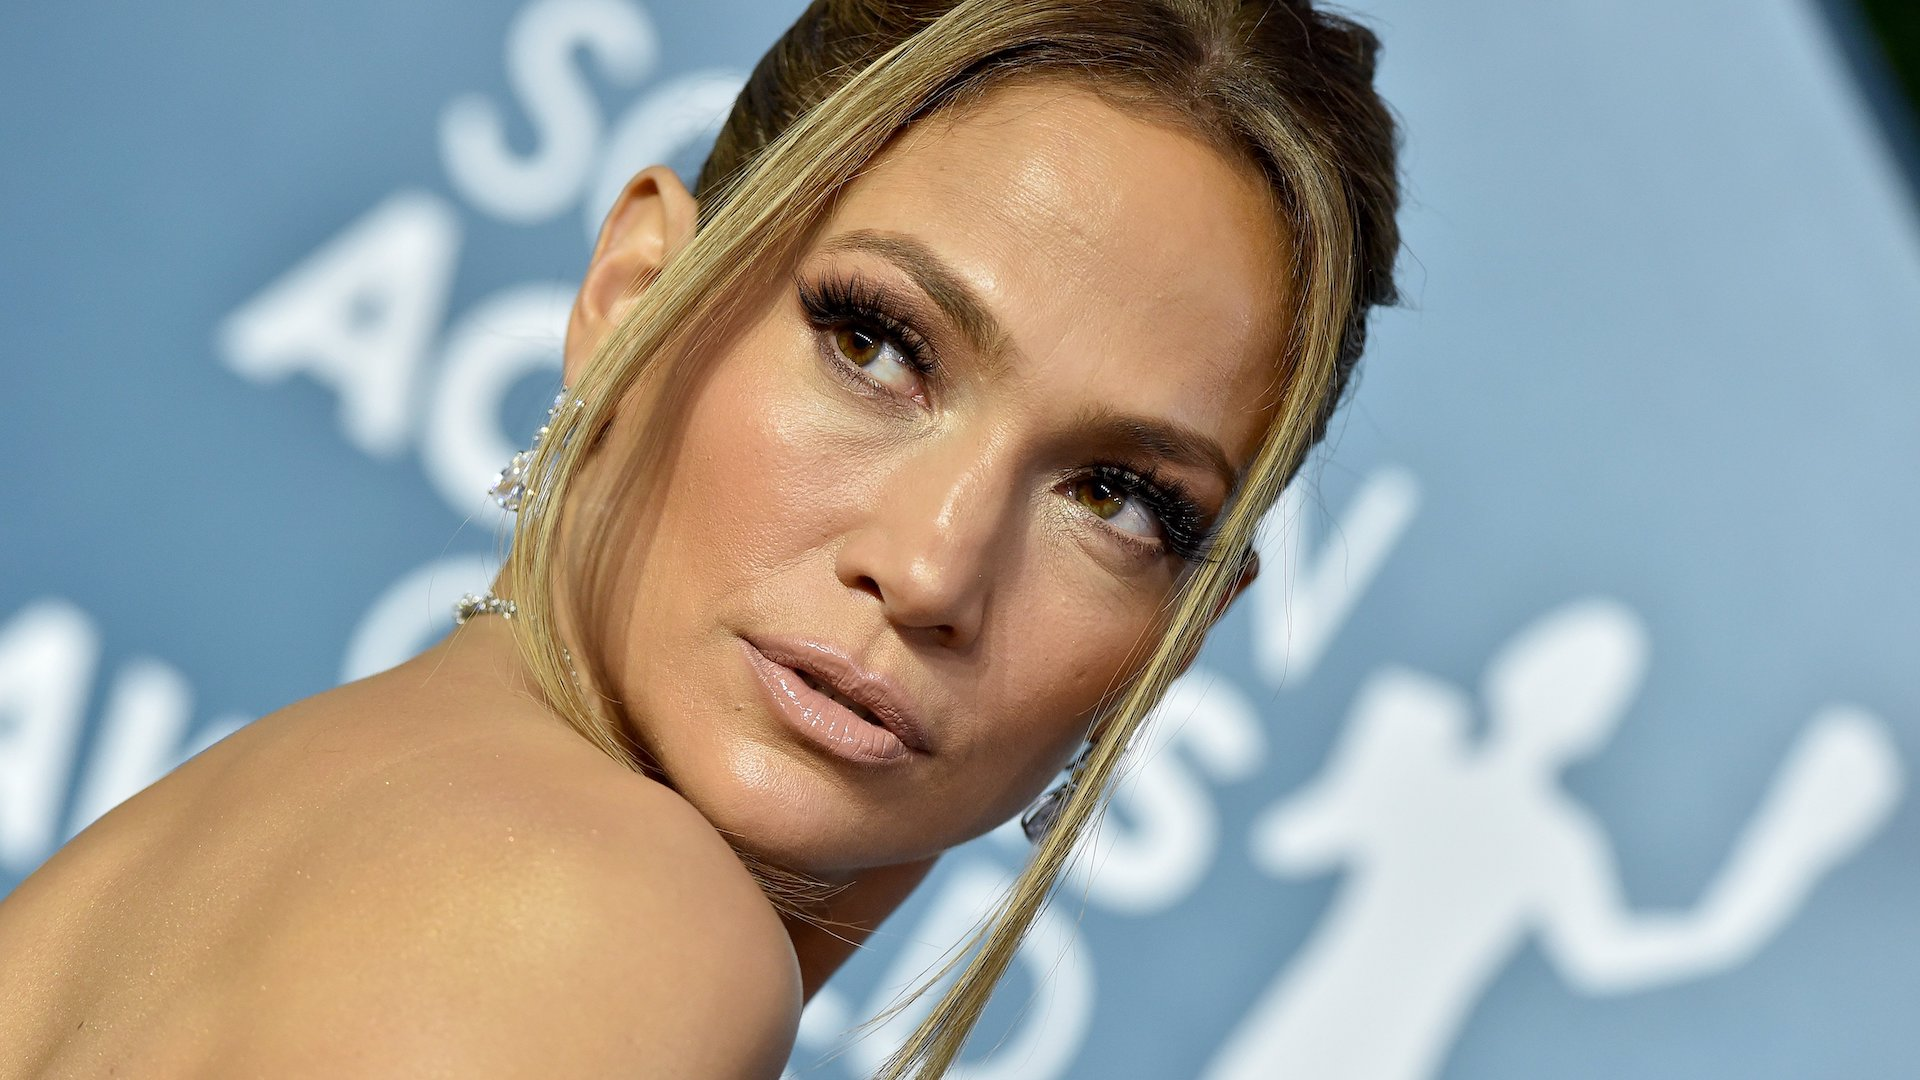 J.Lo's Family Portrait Look Is Summer On Top, Fall On Bottom